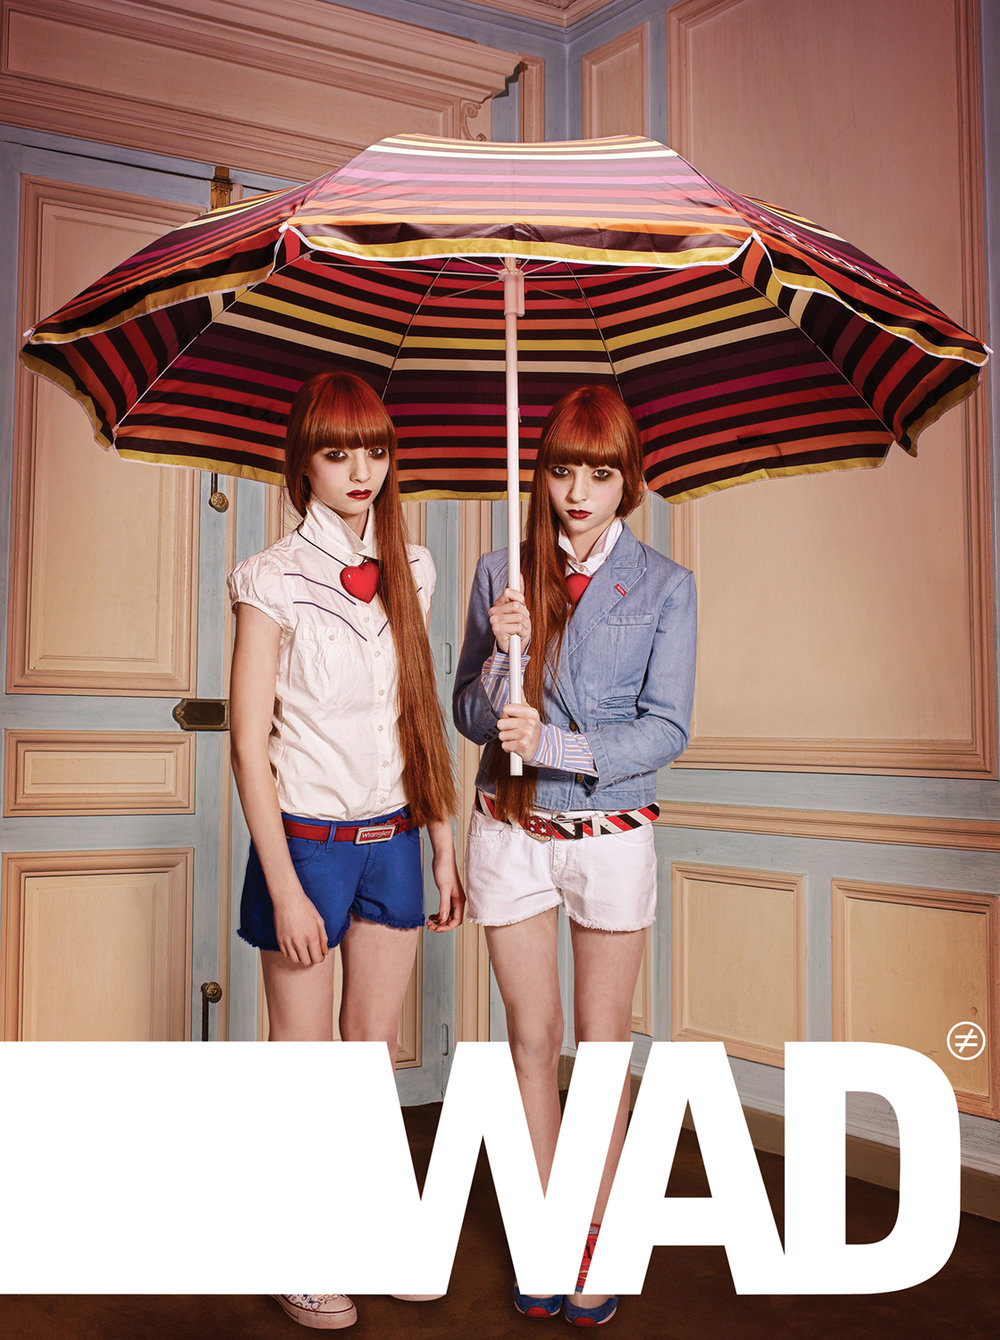 WadeBrothers_commissions_00295.jpg